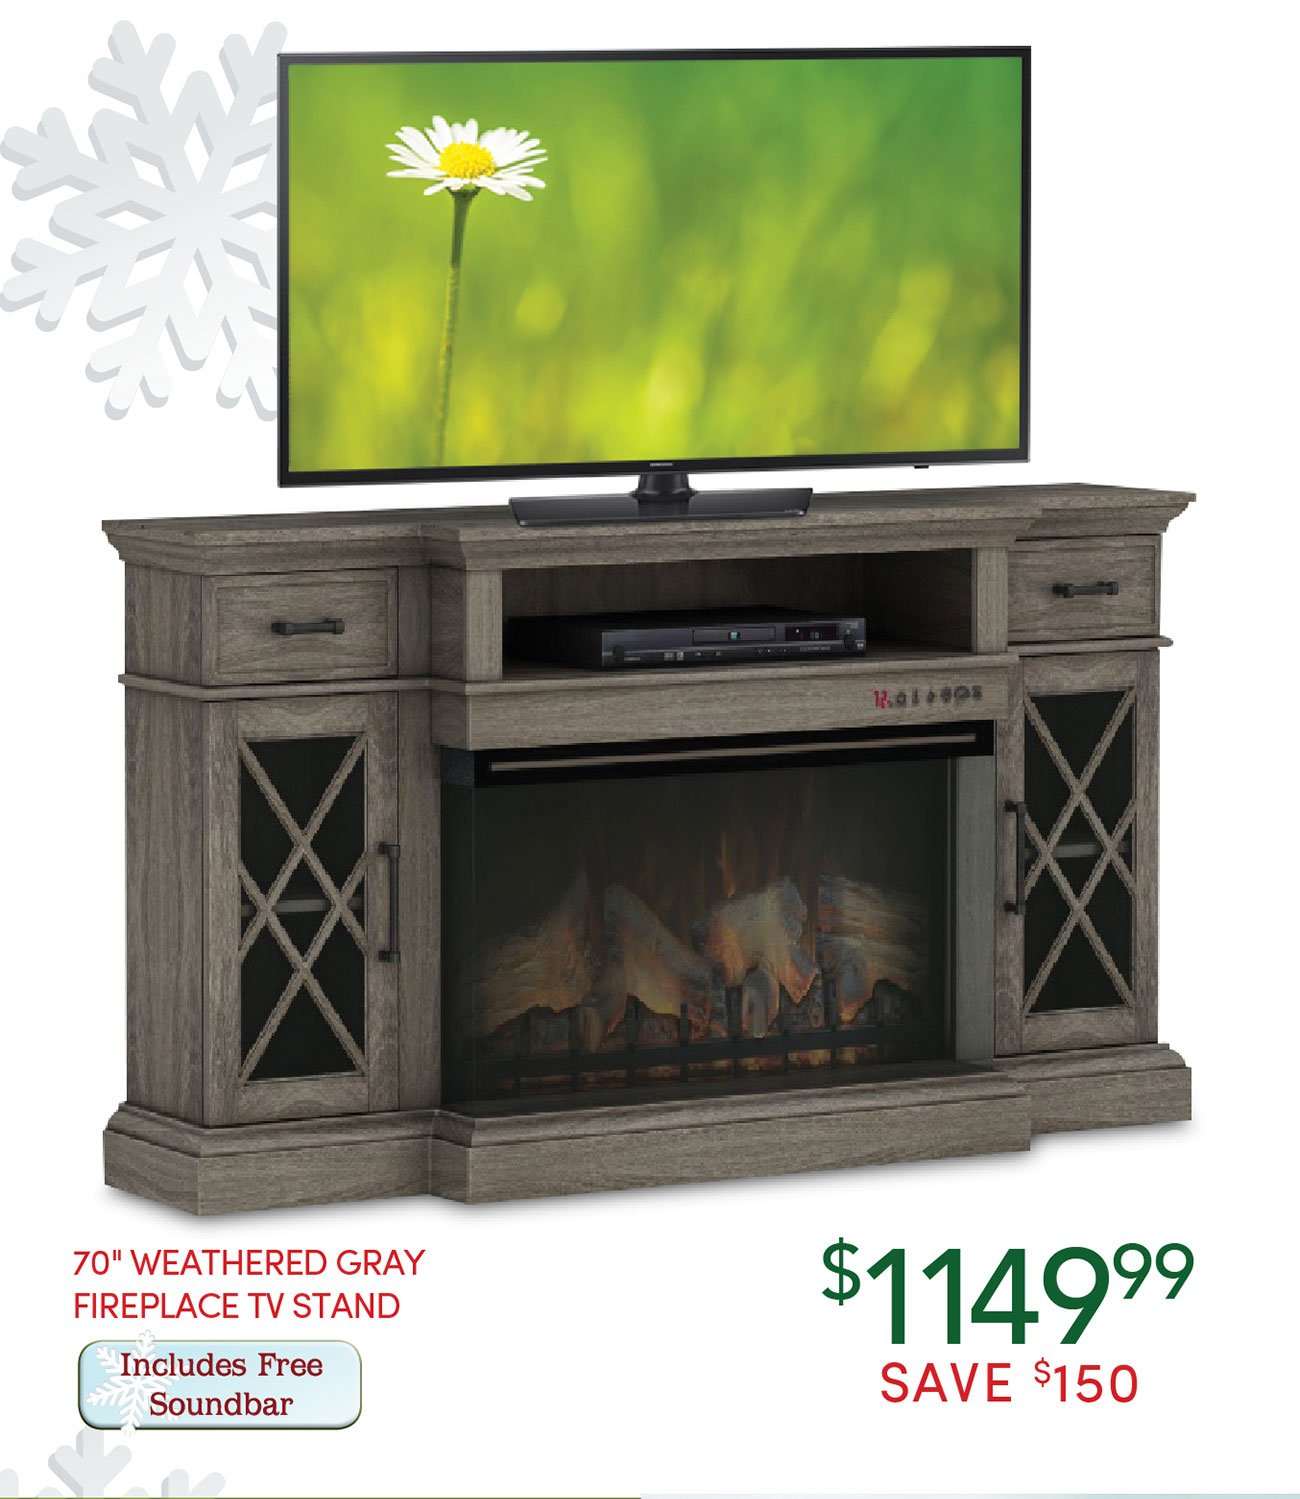 70-inch-fireplace-TV-STAND